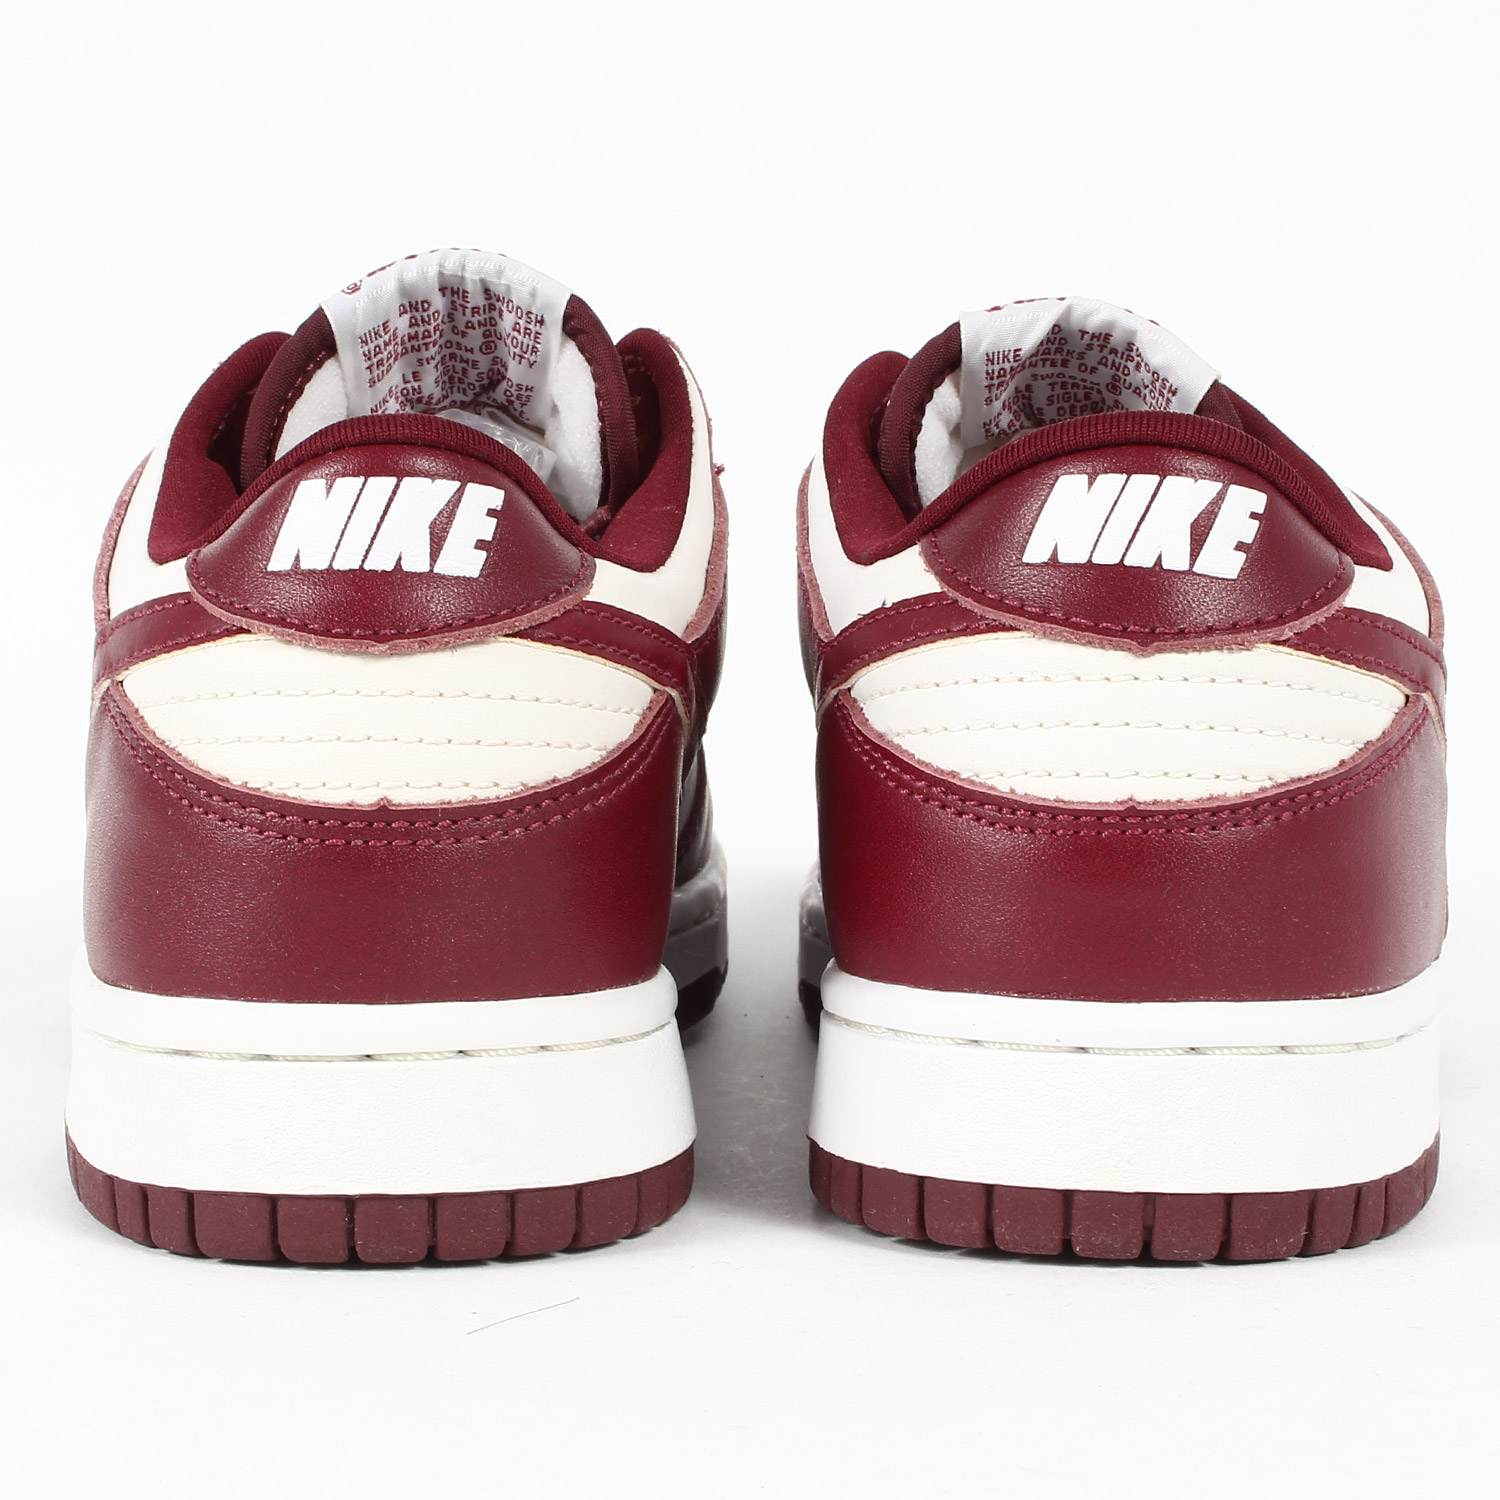 NIKE/ヴィンテージ[ナイキ] | 90's DUNK LOW 初期復刻 セント ...